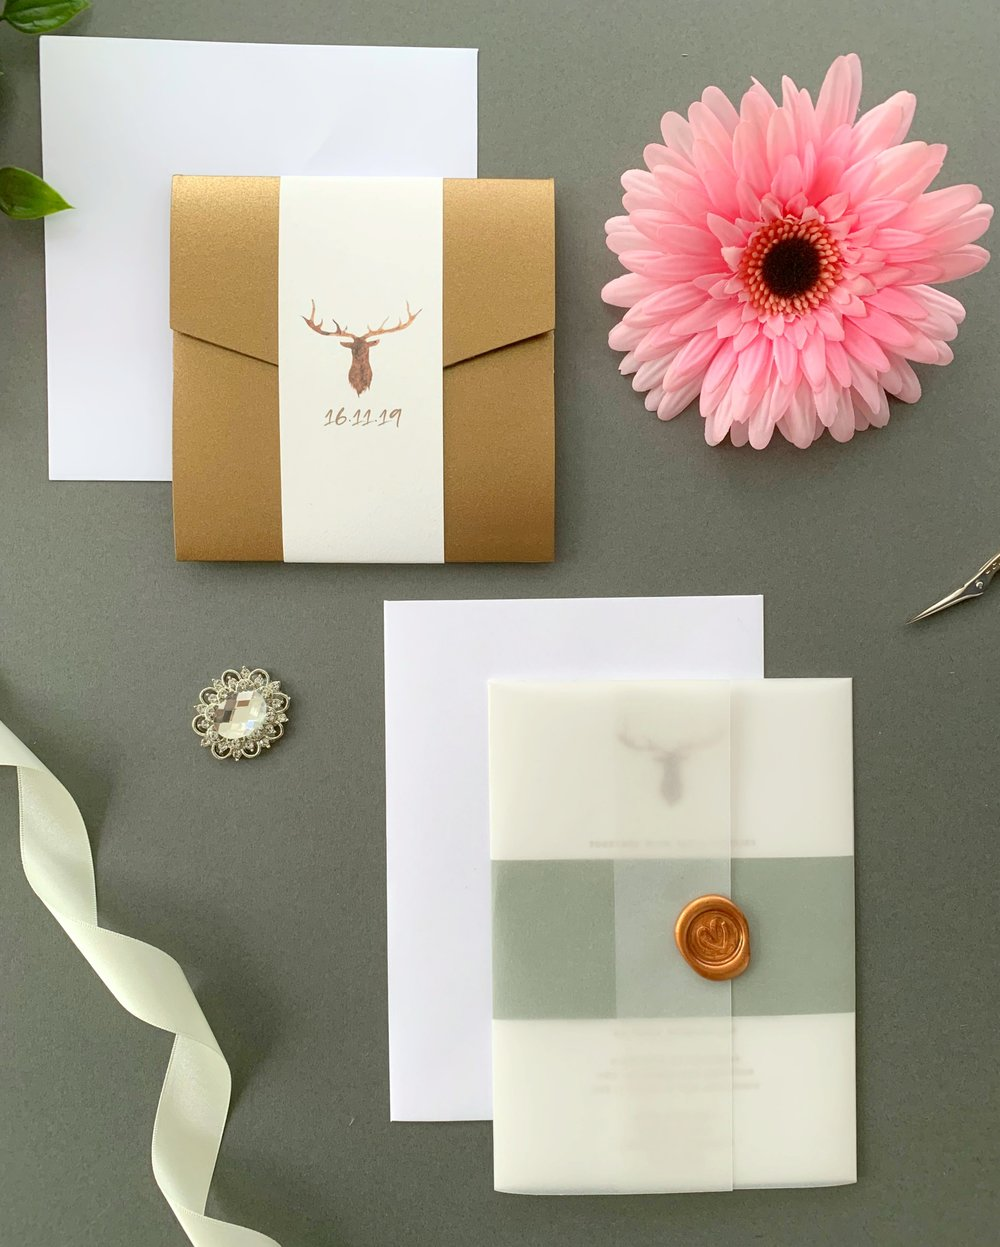 Highgate Pocketfold Suite with Paper Belly Band, Invitation Suite with Paper Belly Band, Vellum Jacket and Copper Wax Seal